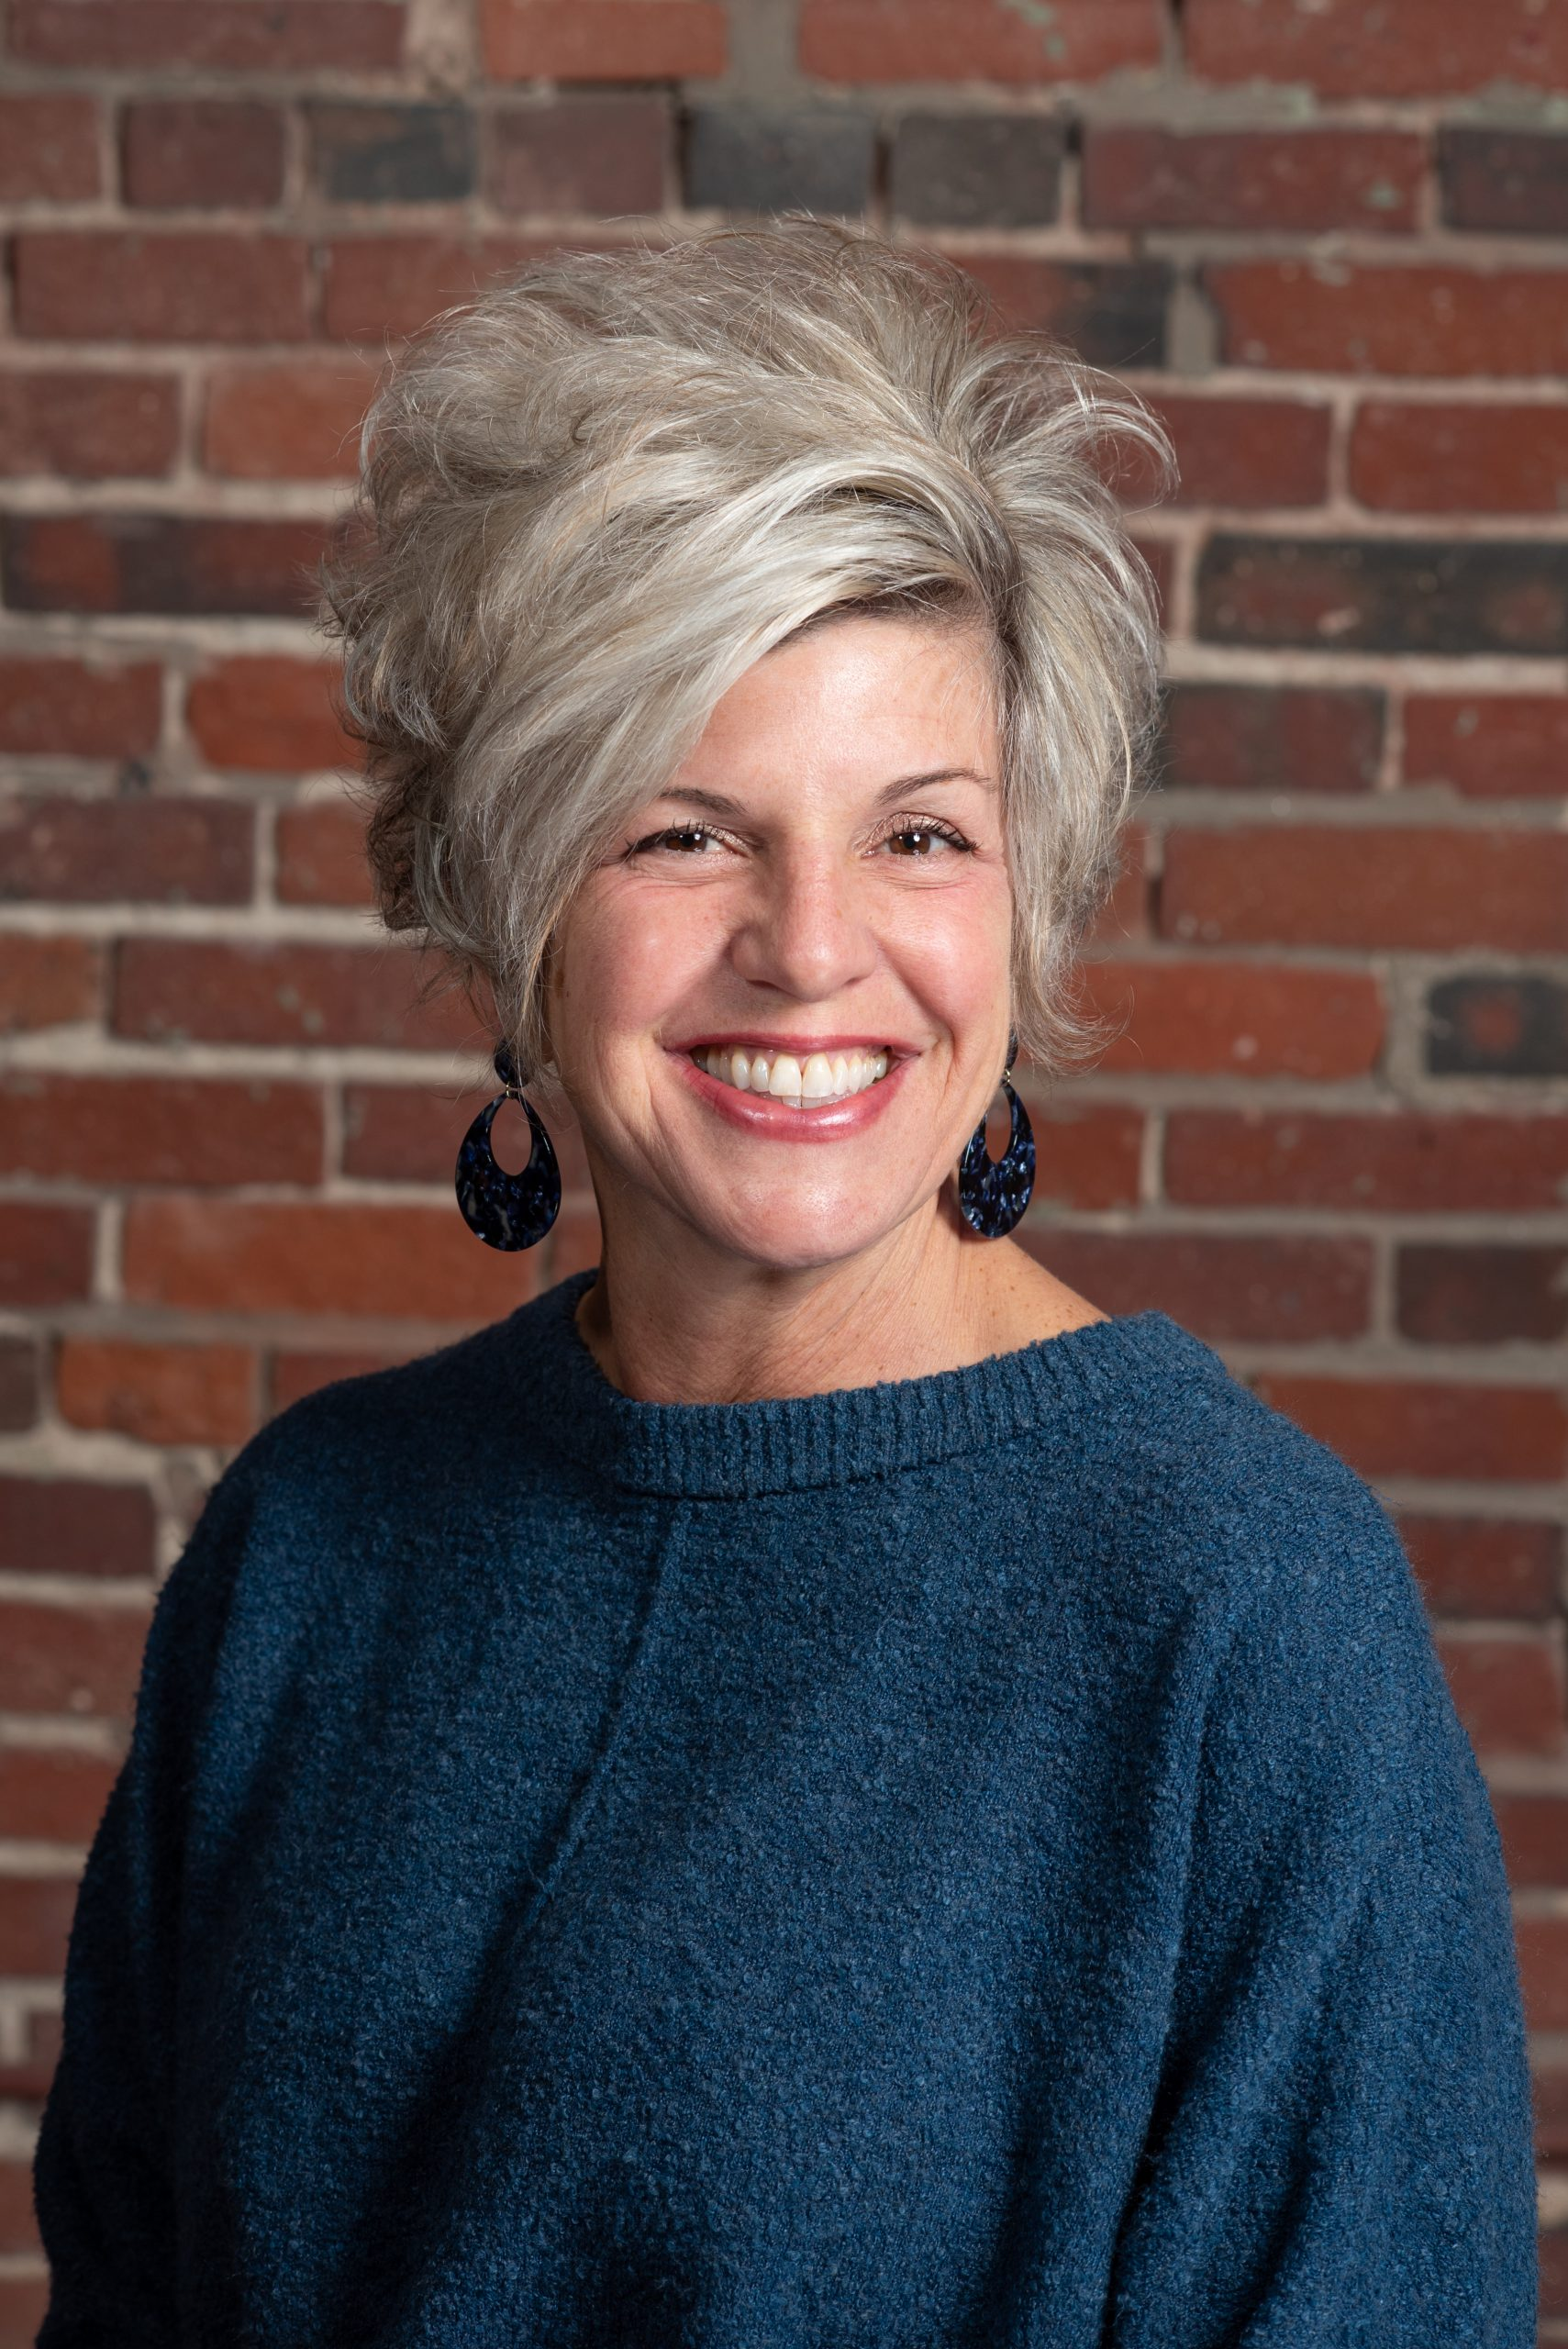 A photo of our executive assistant Gretchen Hubert in front of a brick wall.